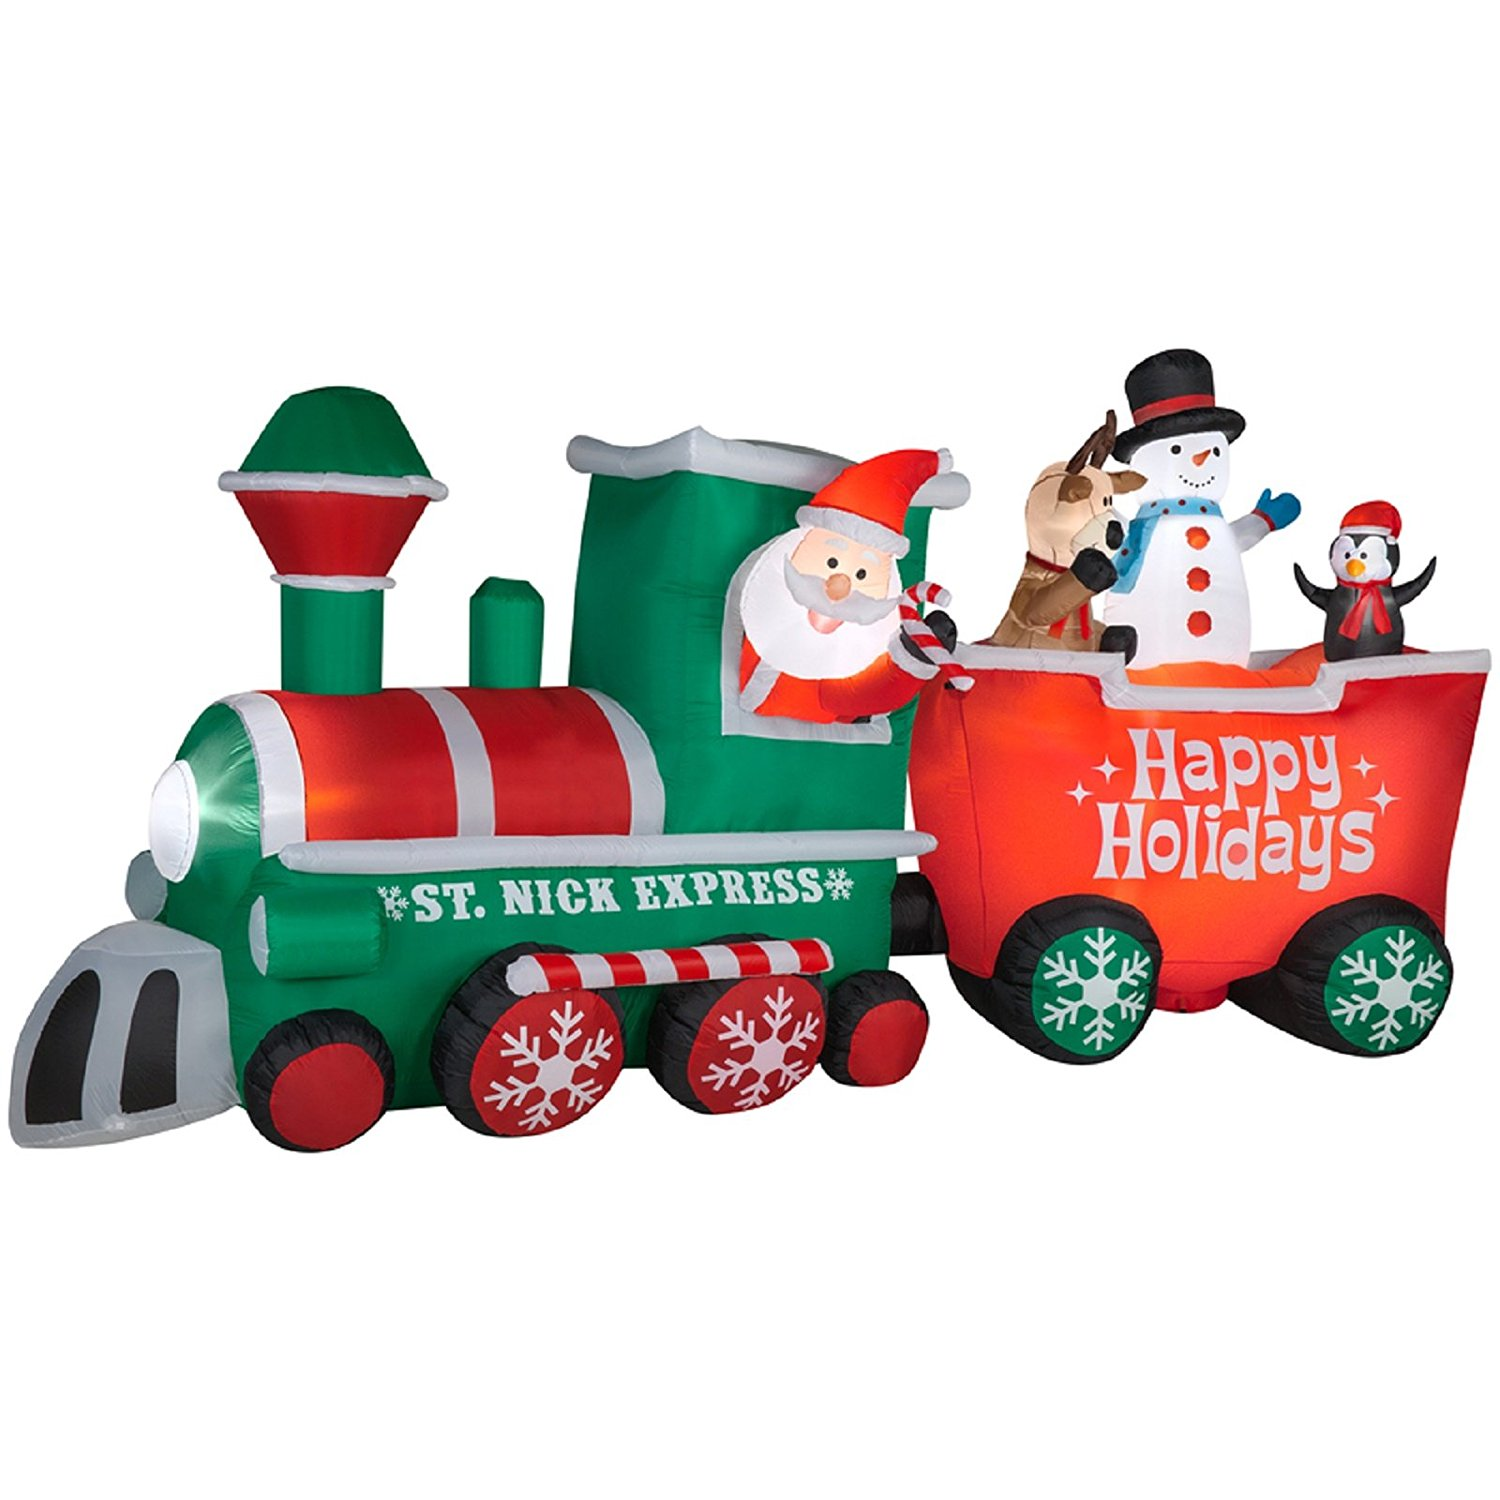 Gemmy 15.5 FT ST. Nick Express Train with Conductor